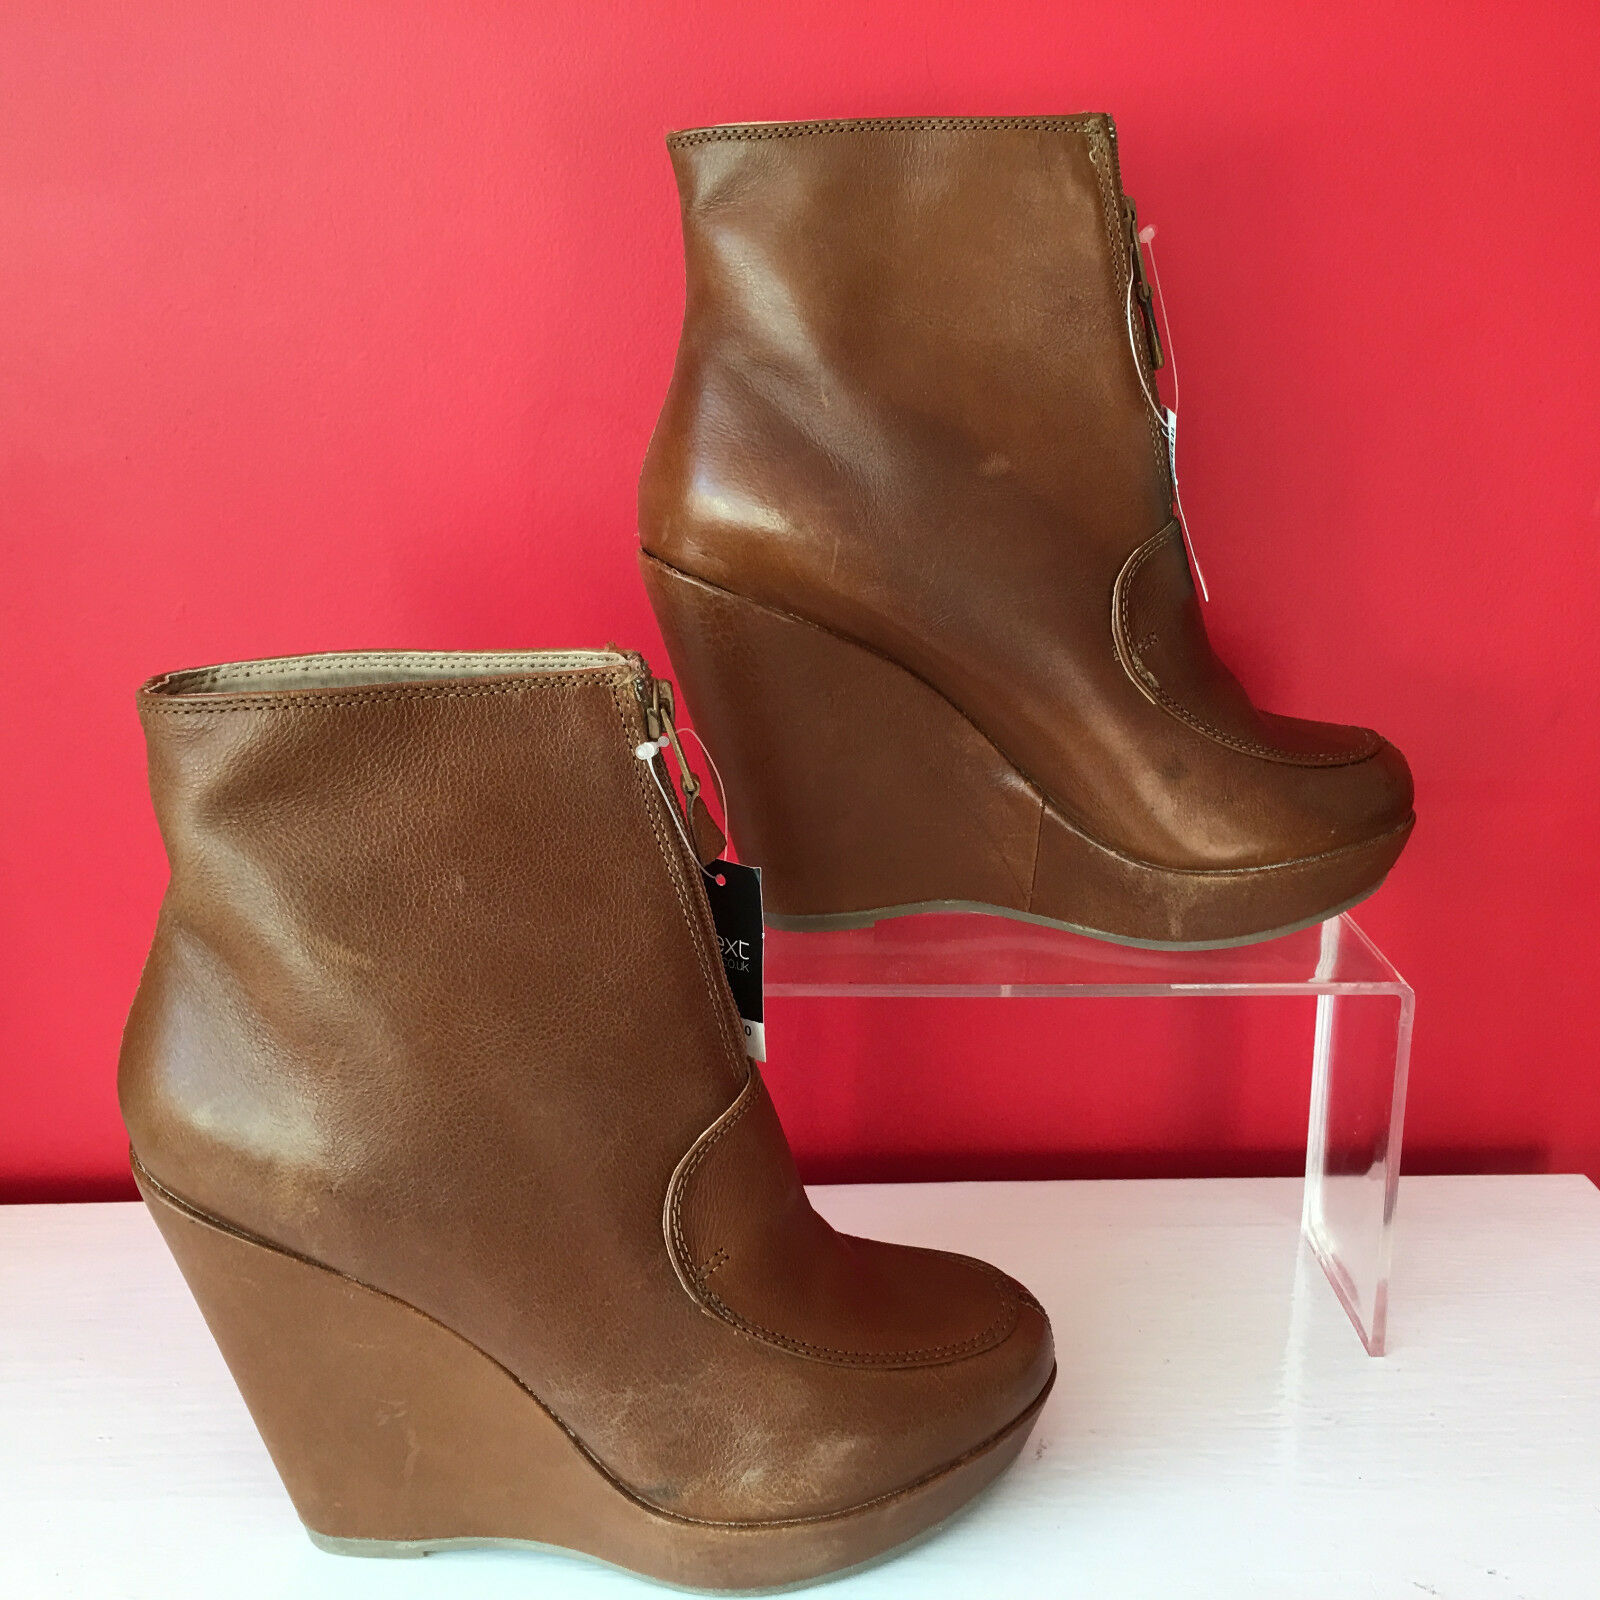 Bnwt NEXT camel en cuir Marron Clair Talon Compensé Bottines Front Zip Chaussures EU39 UK 6